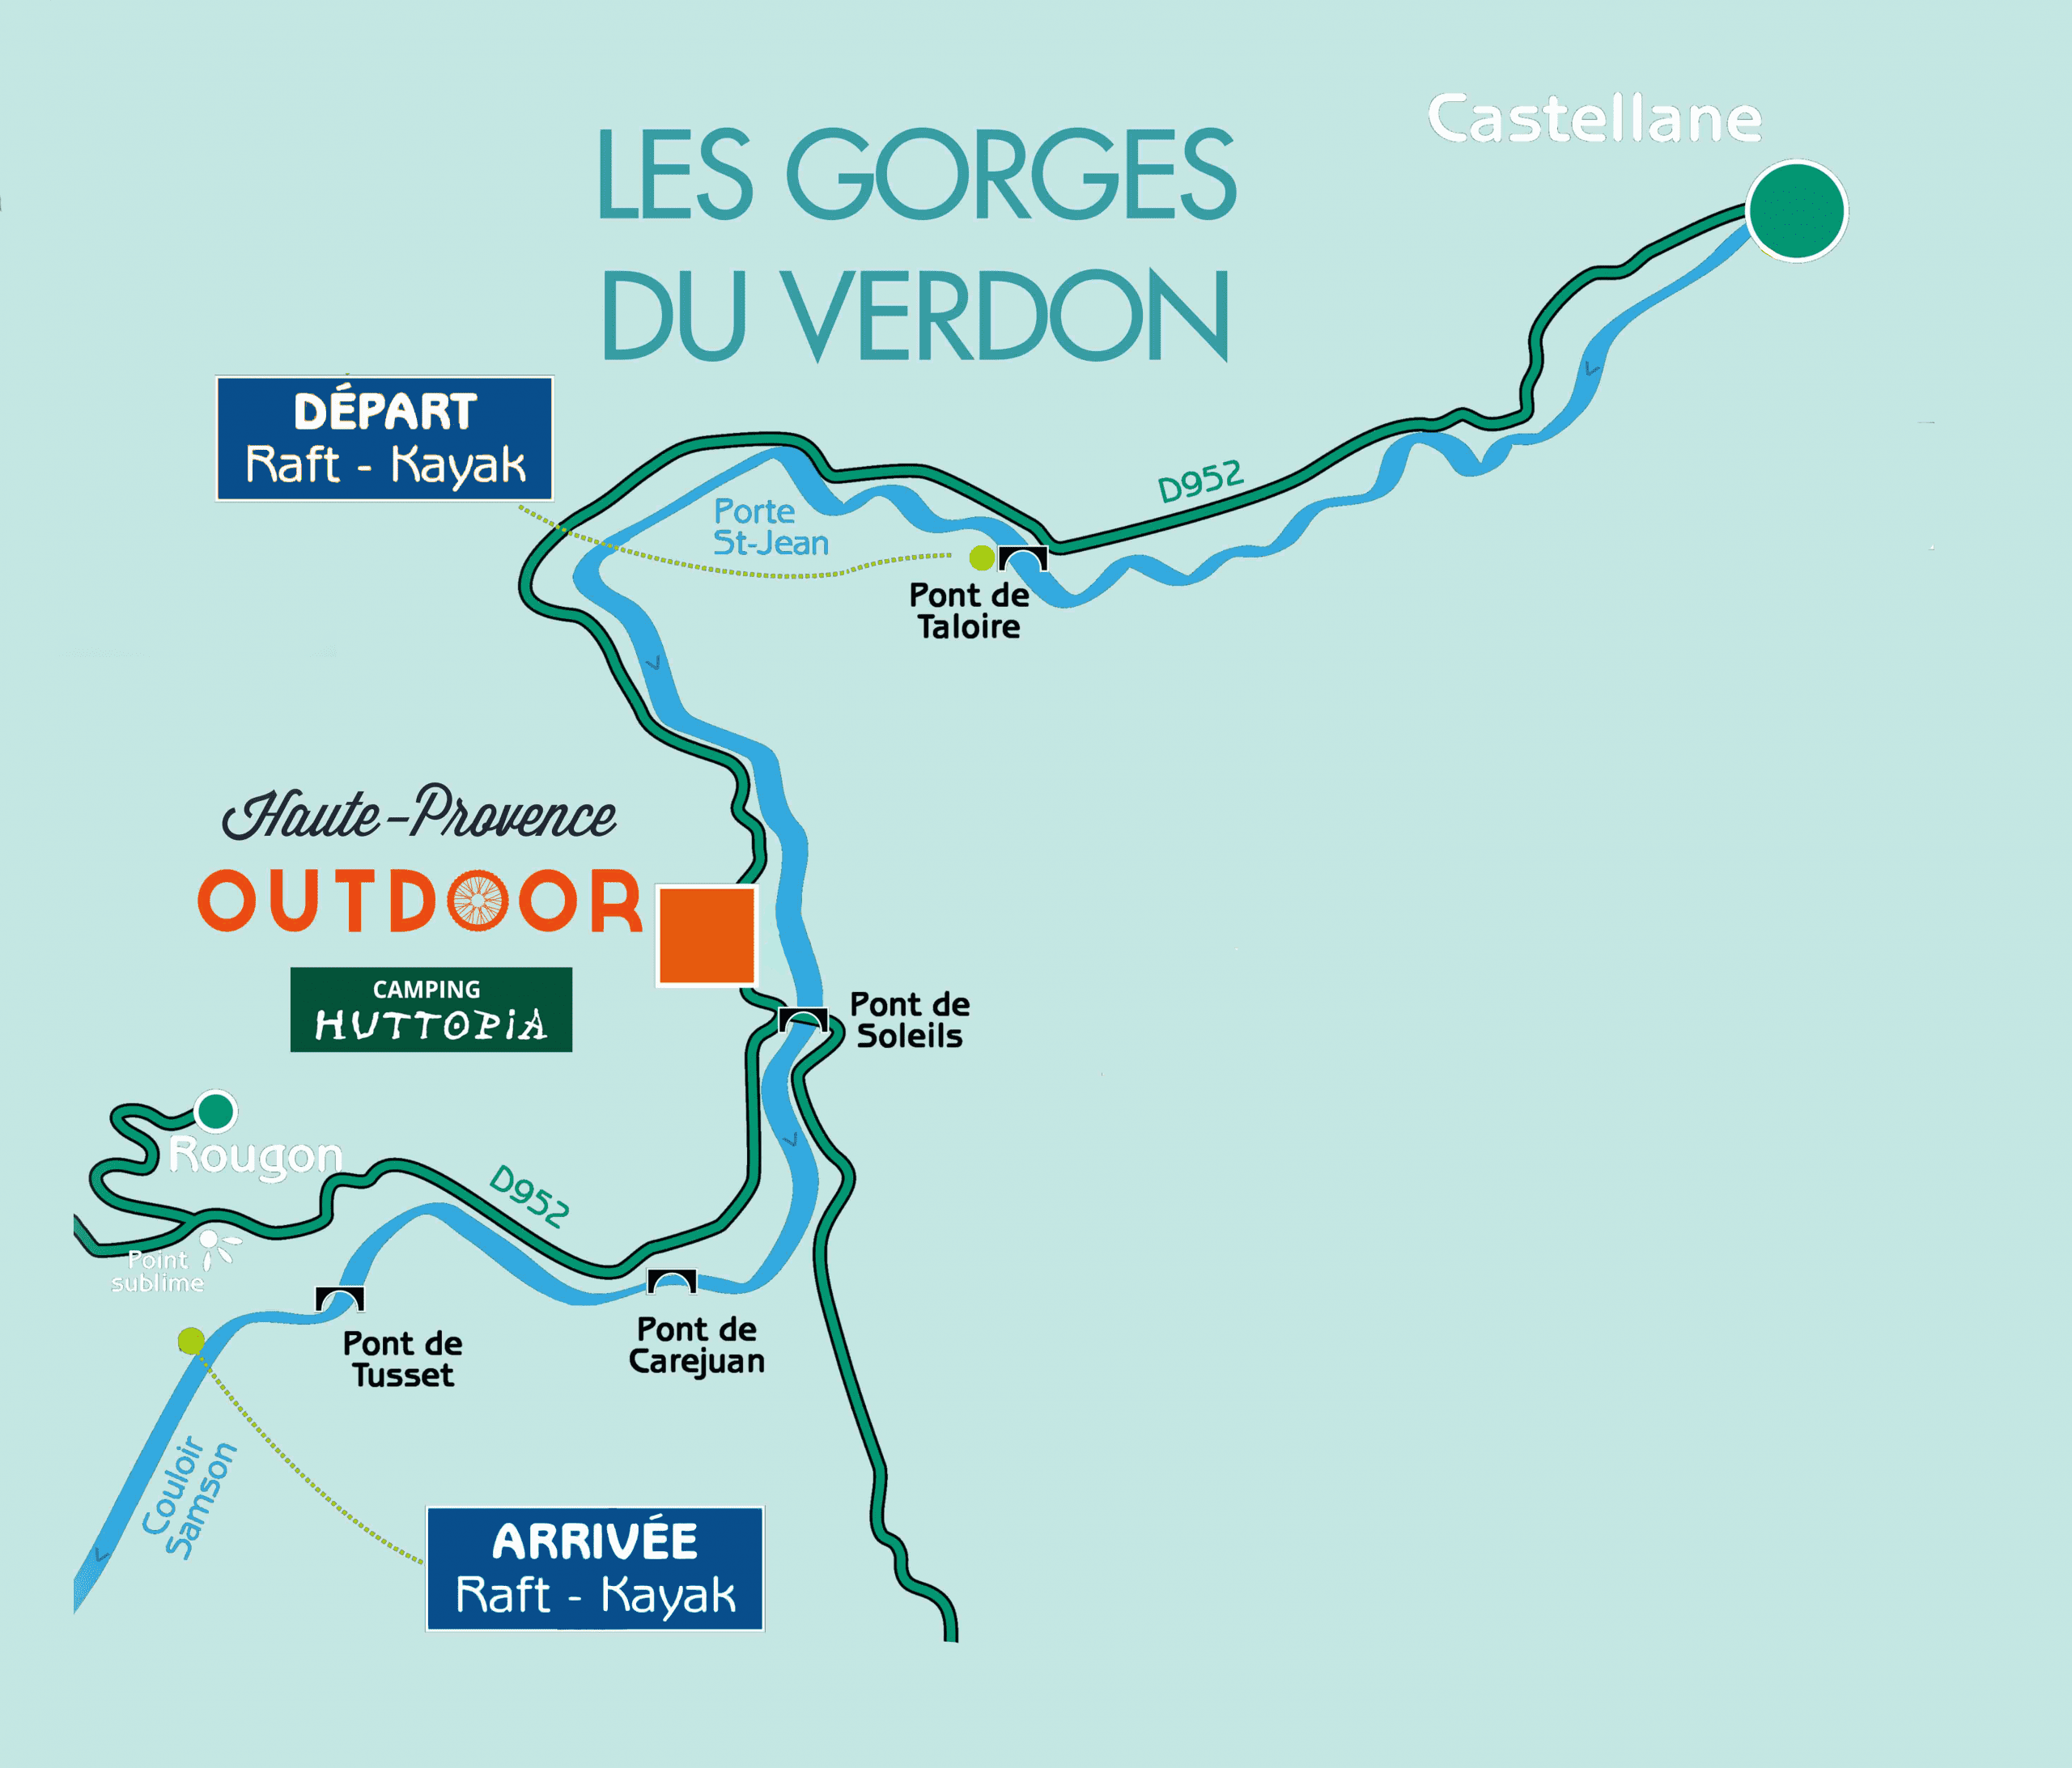 rafting or canoeing map of the taloire bridge